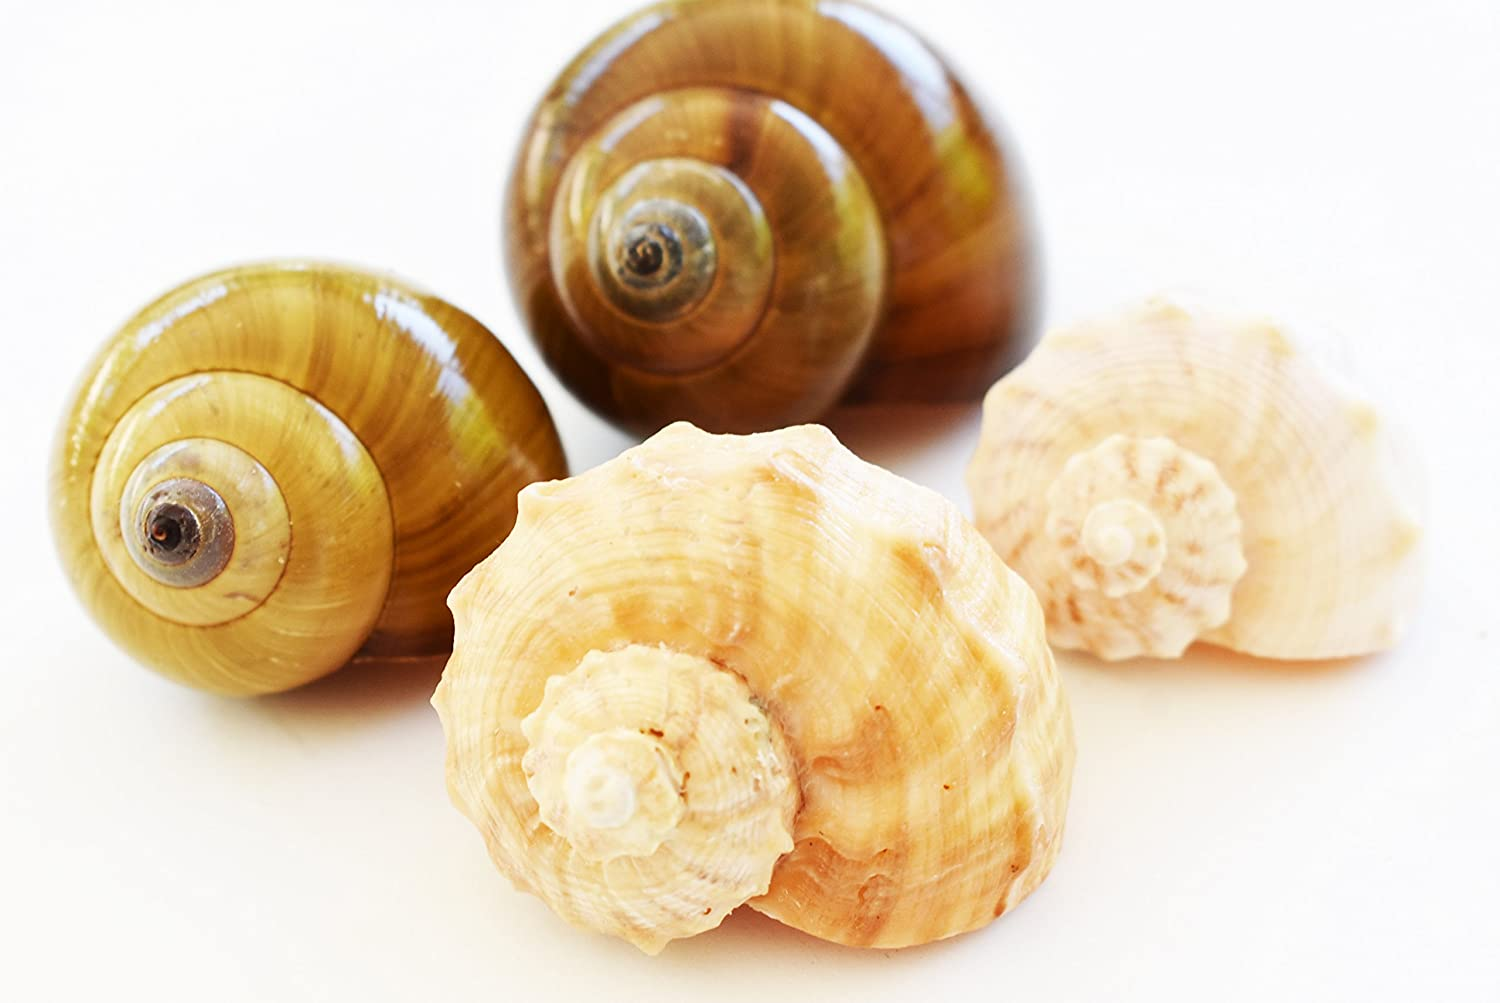 Florida Shells and Gifts Inc. 4 Large Shell Hermit Crab Changing Set - Select Shells - Large 1 1/4-1 3/4+ opening - Land Snail and Conch Shells